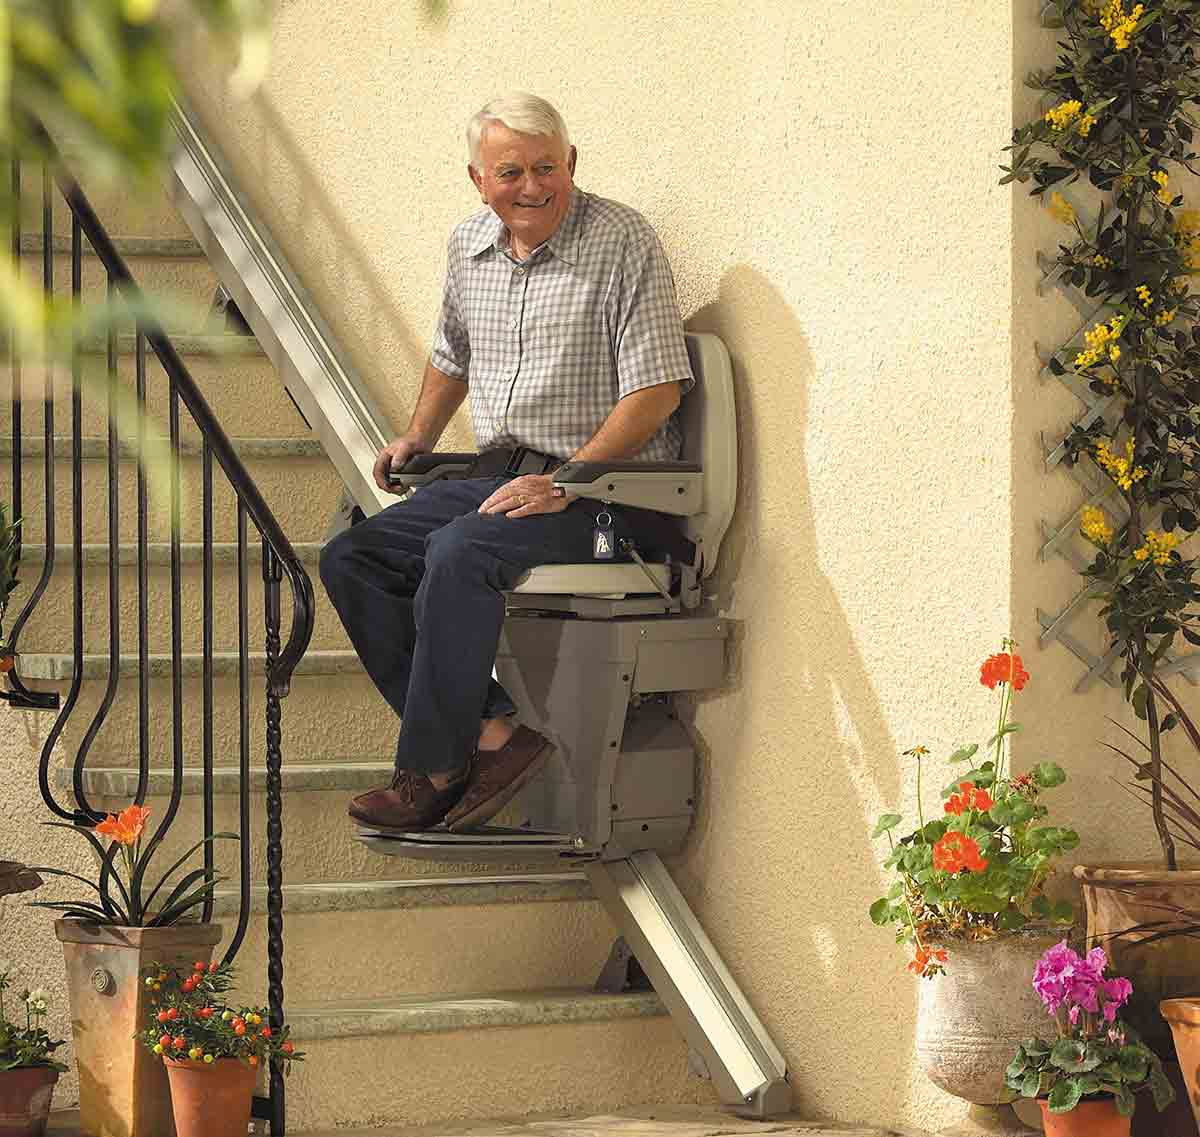 Outdoor stairlift rails